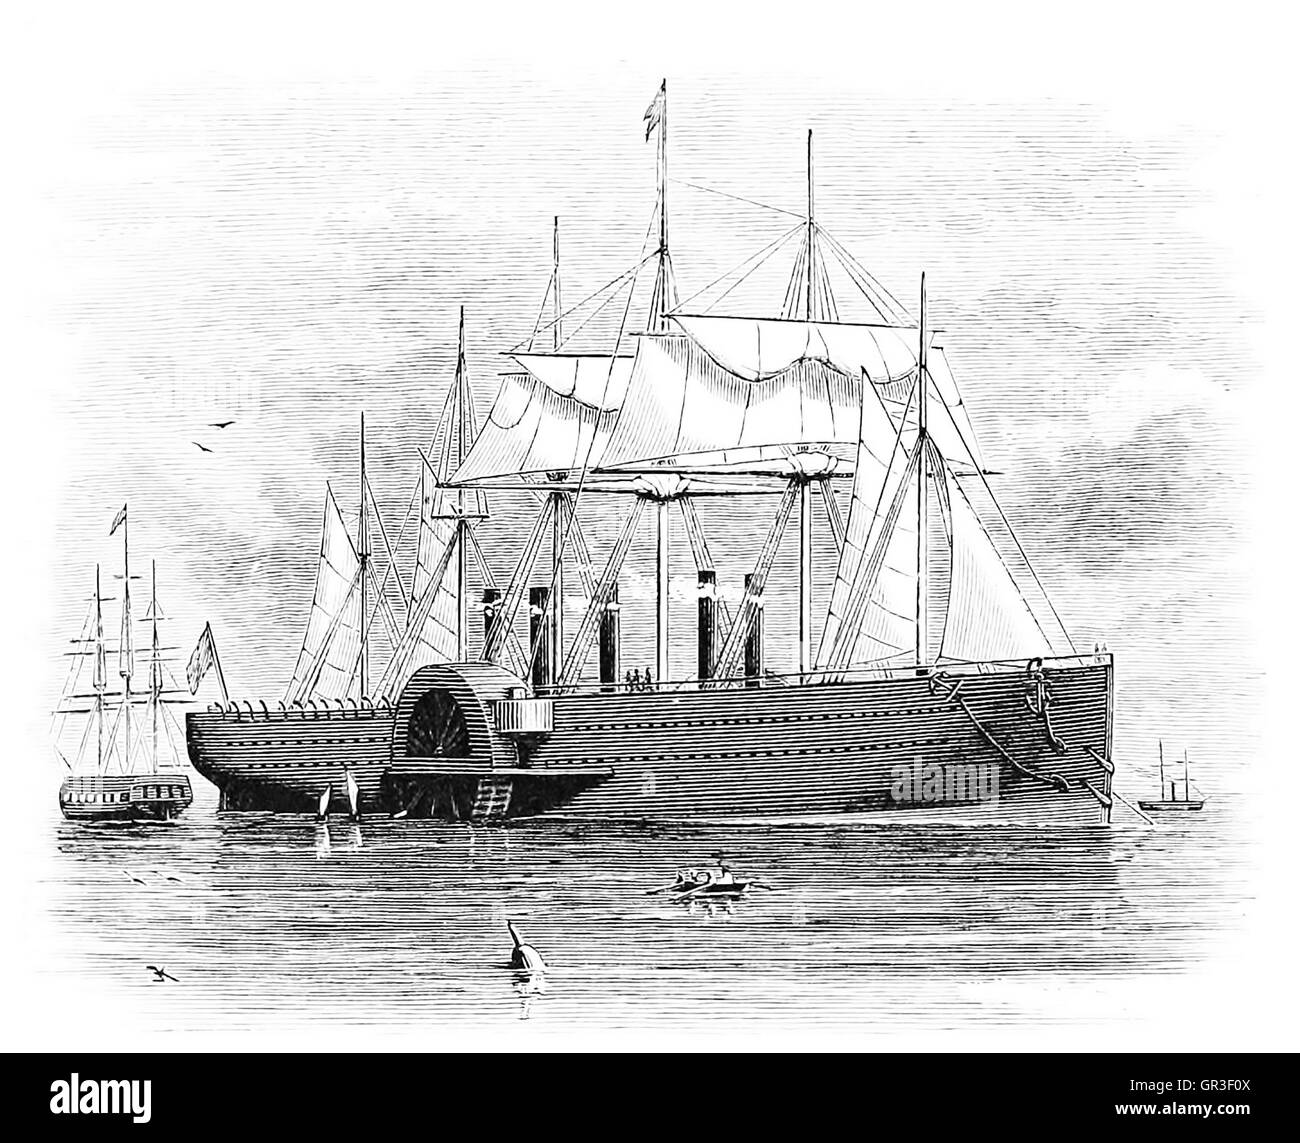 SS GREAT EASTERN in an 1877 engraving - Stock Image